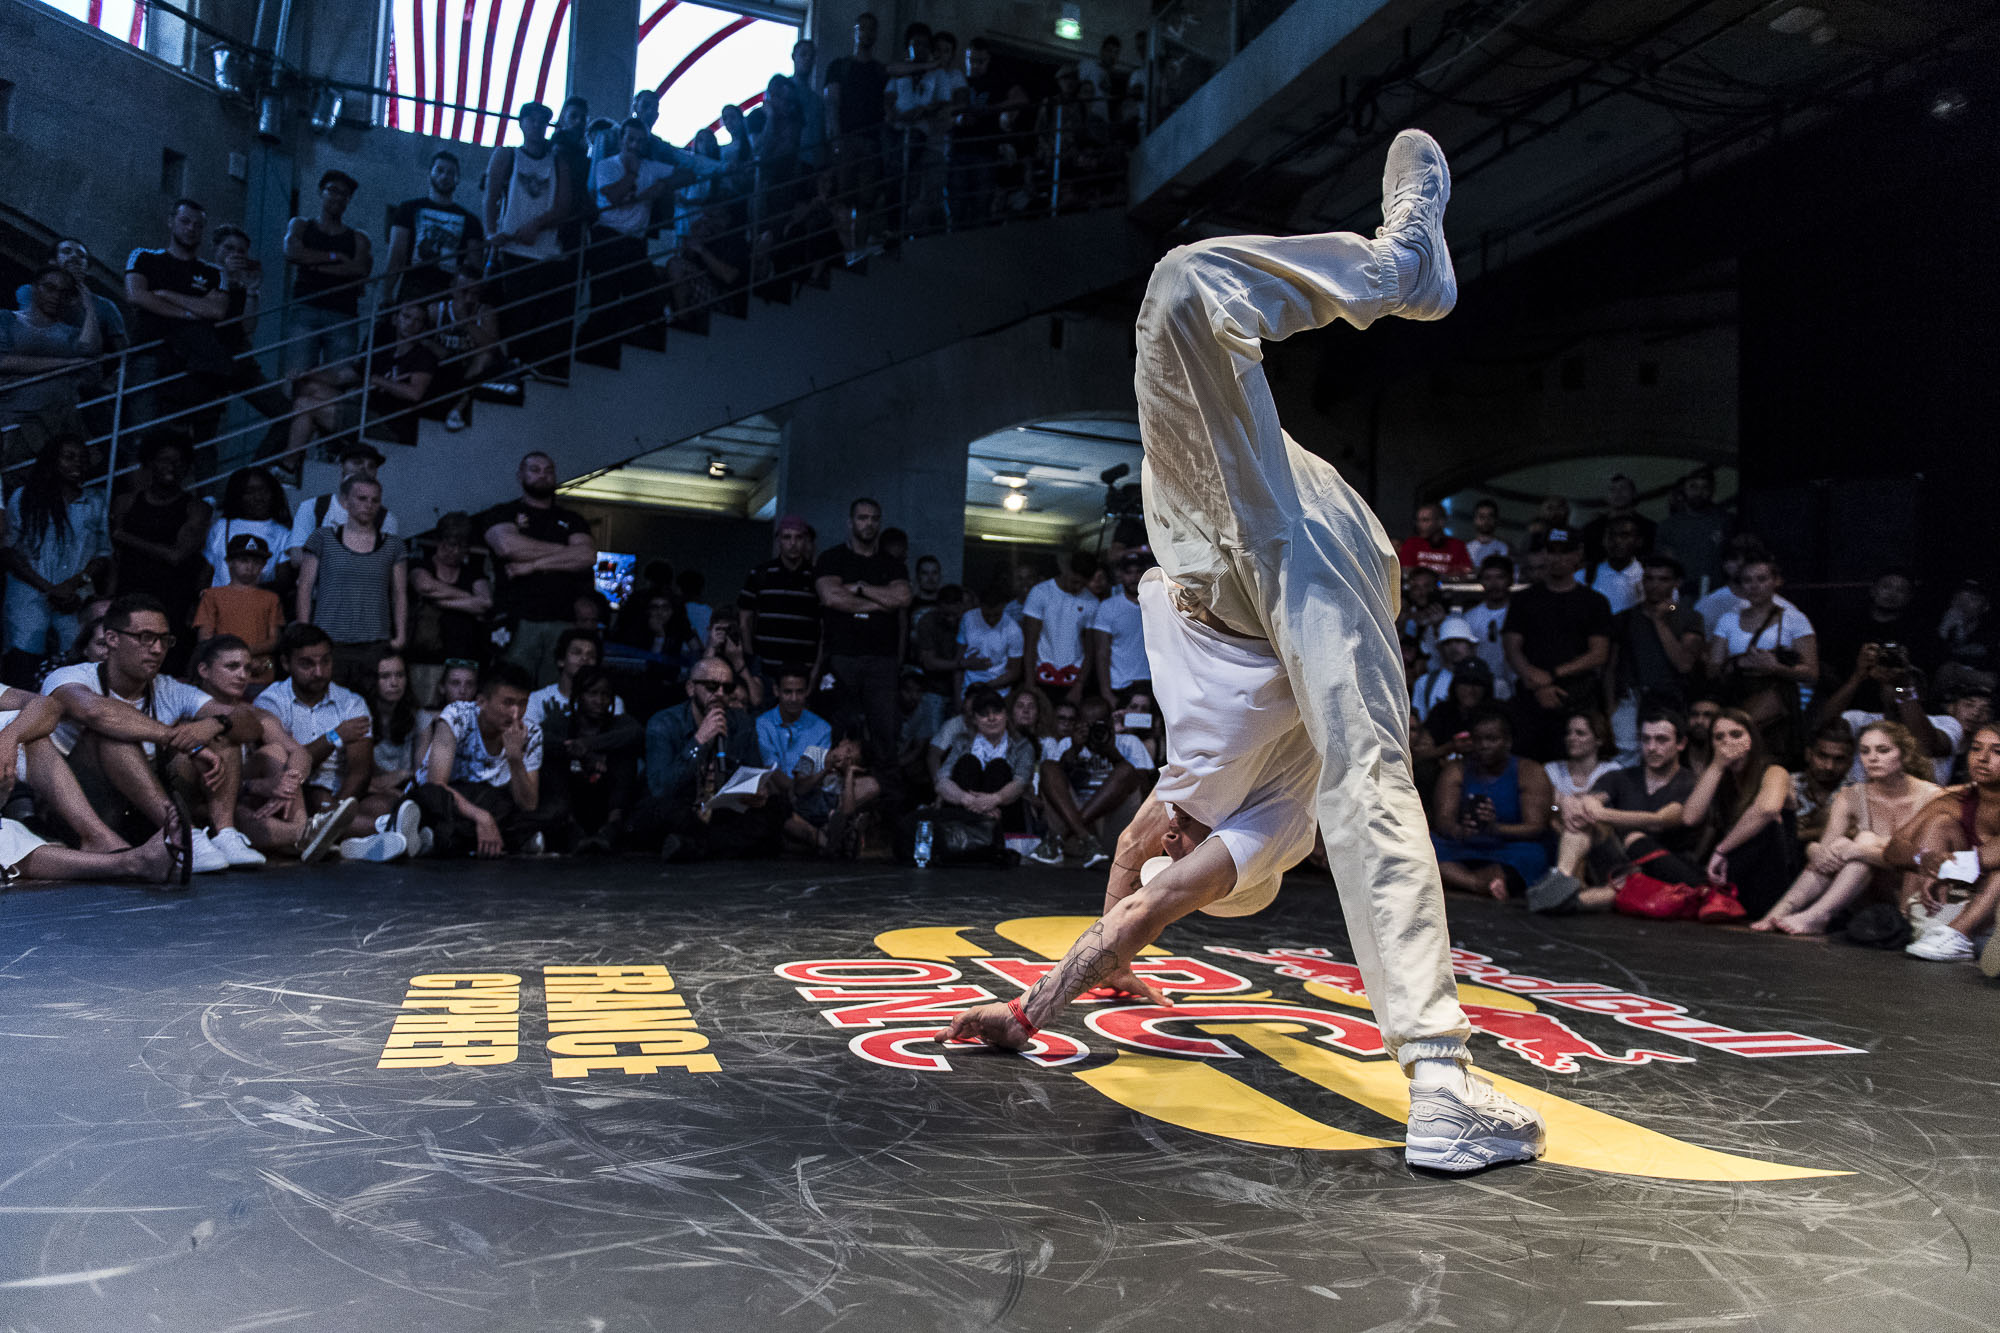 Fenix competes at the WIP Villette during the Red Bull BC One France Cypher Final in Paris, France on July 10th 2016.